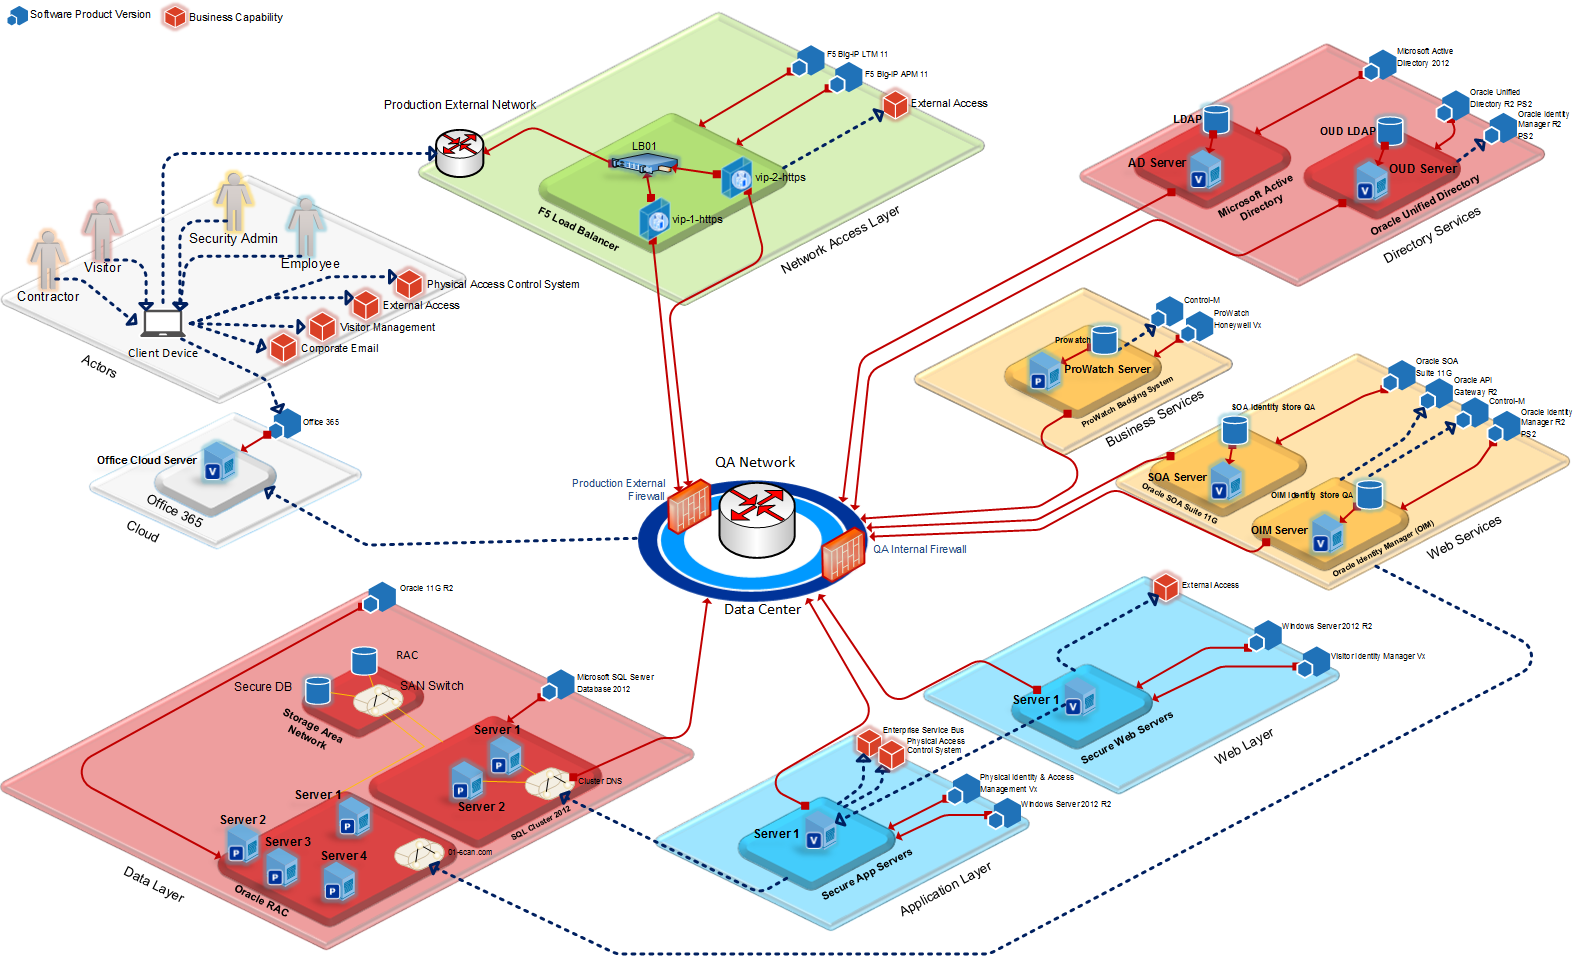 Visio Logical Network Diagram Jvc Radio Bluetooth Verbinden Technology Using Microsoft 2013